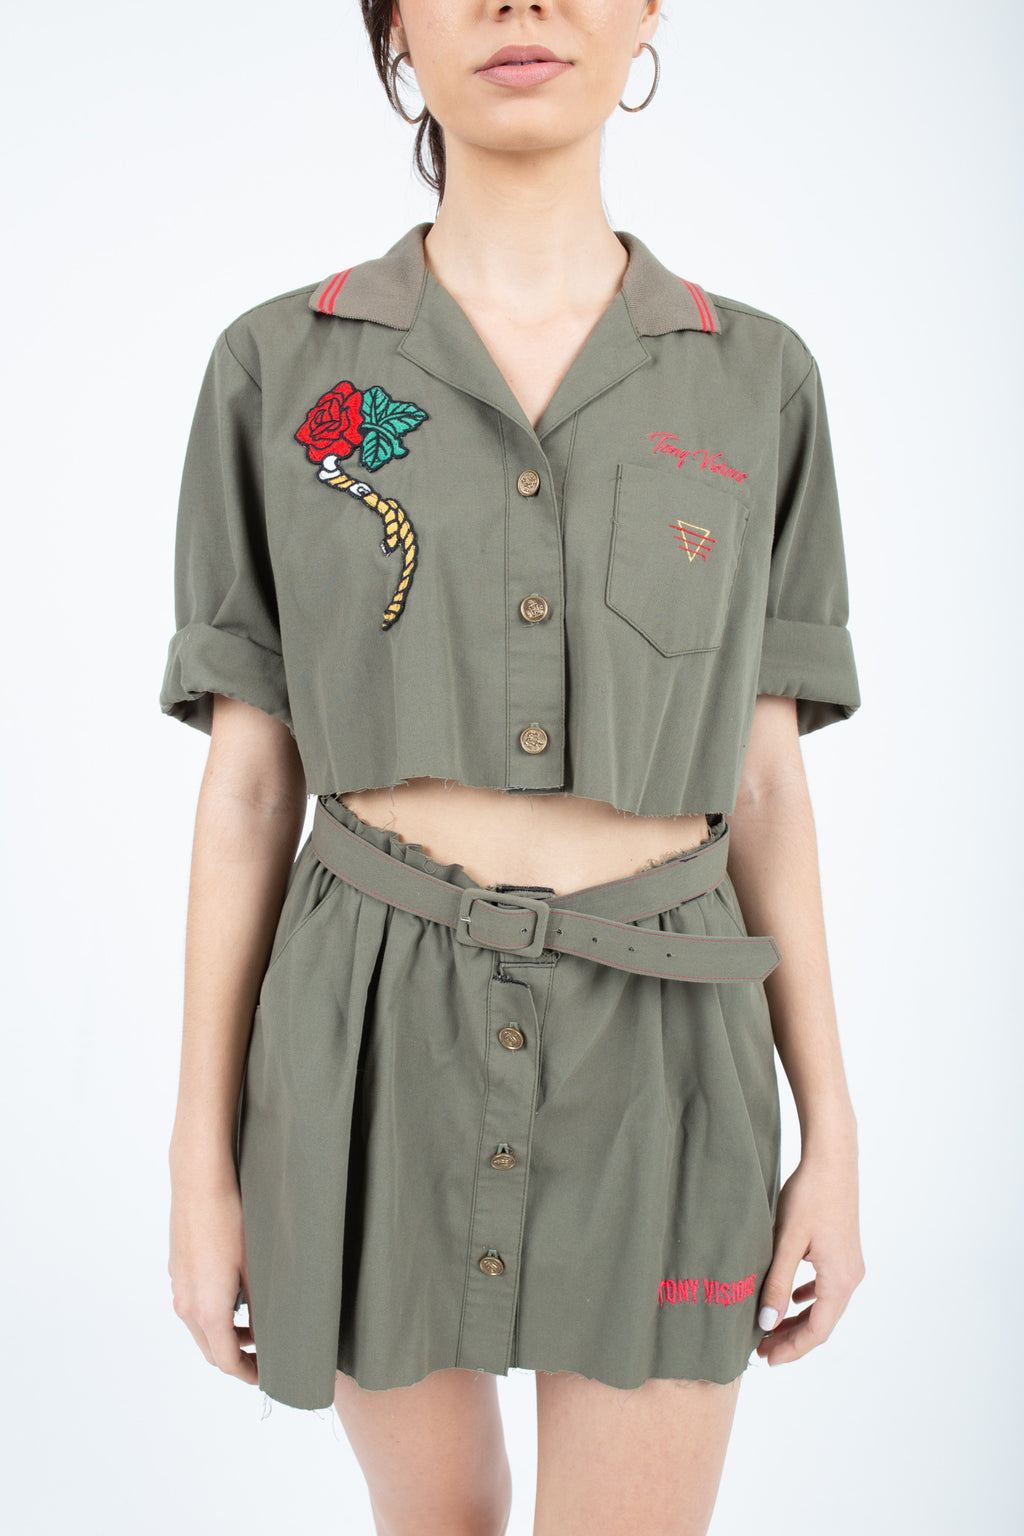 Army Brat Fierce Two Piece